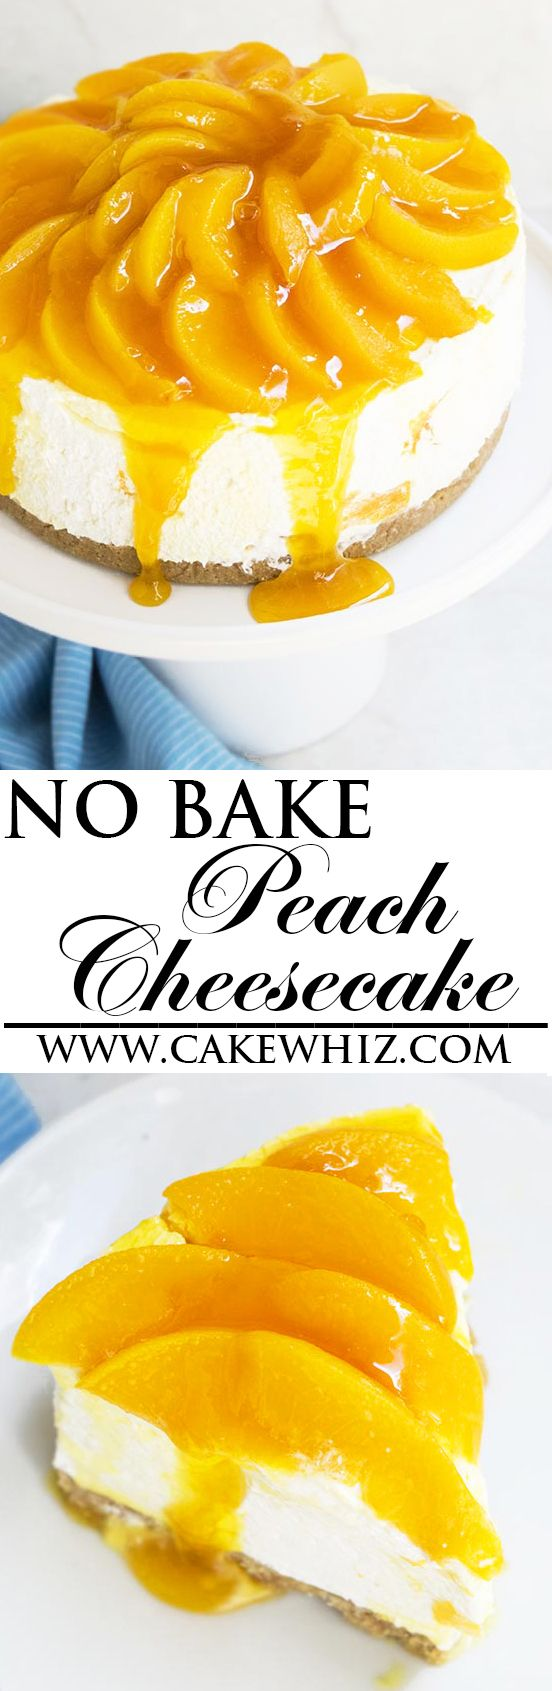 This Easy No Bake Peach Cheesecake Recipe Is So Rich And Creamy Made With Simple